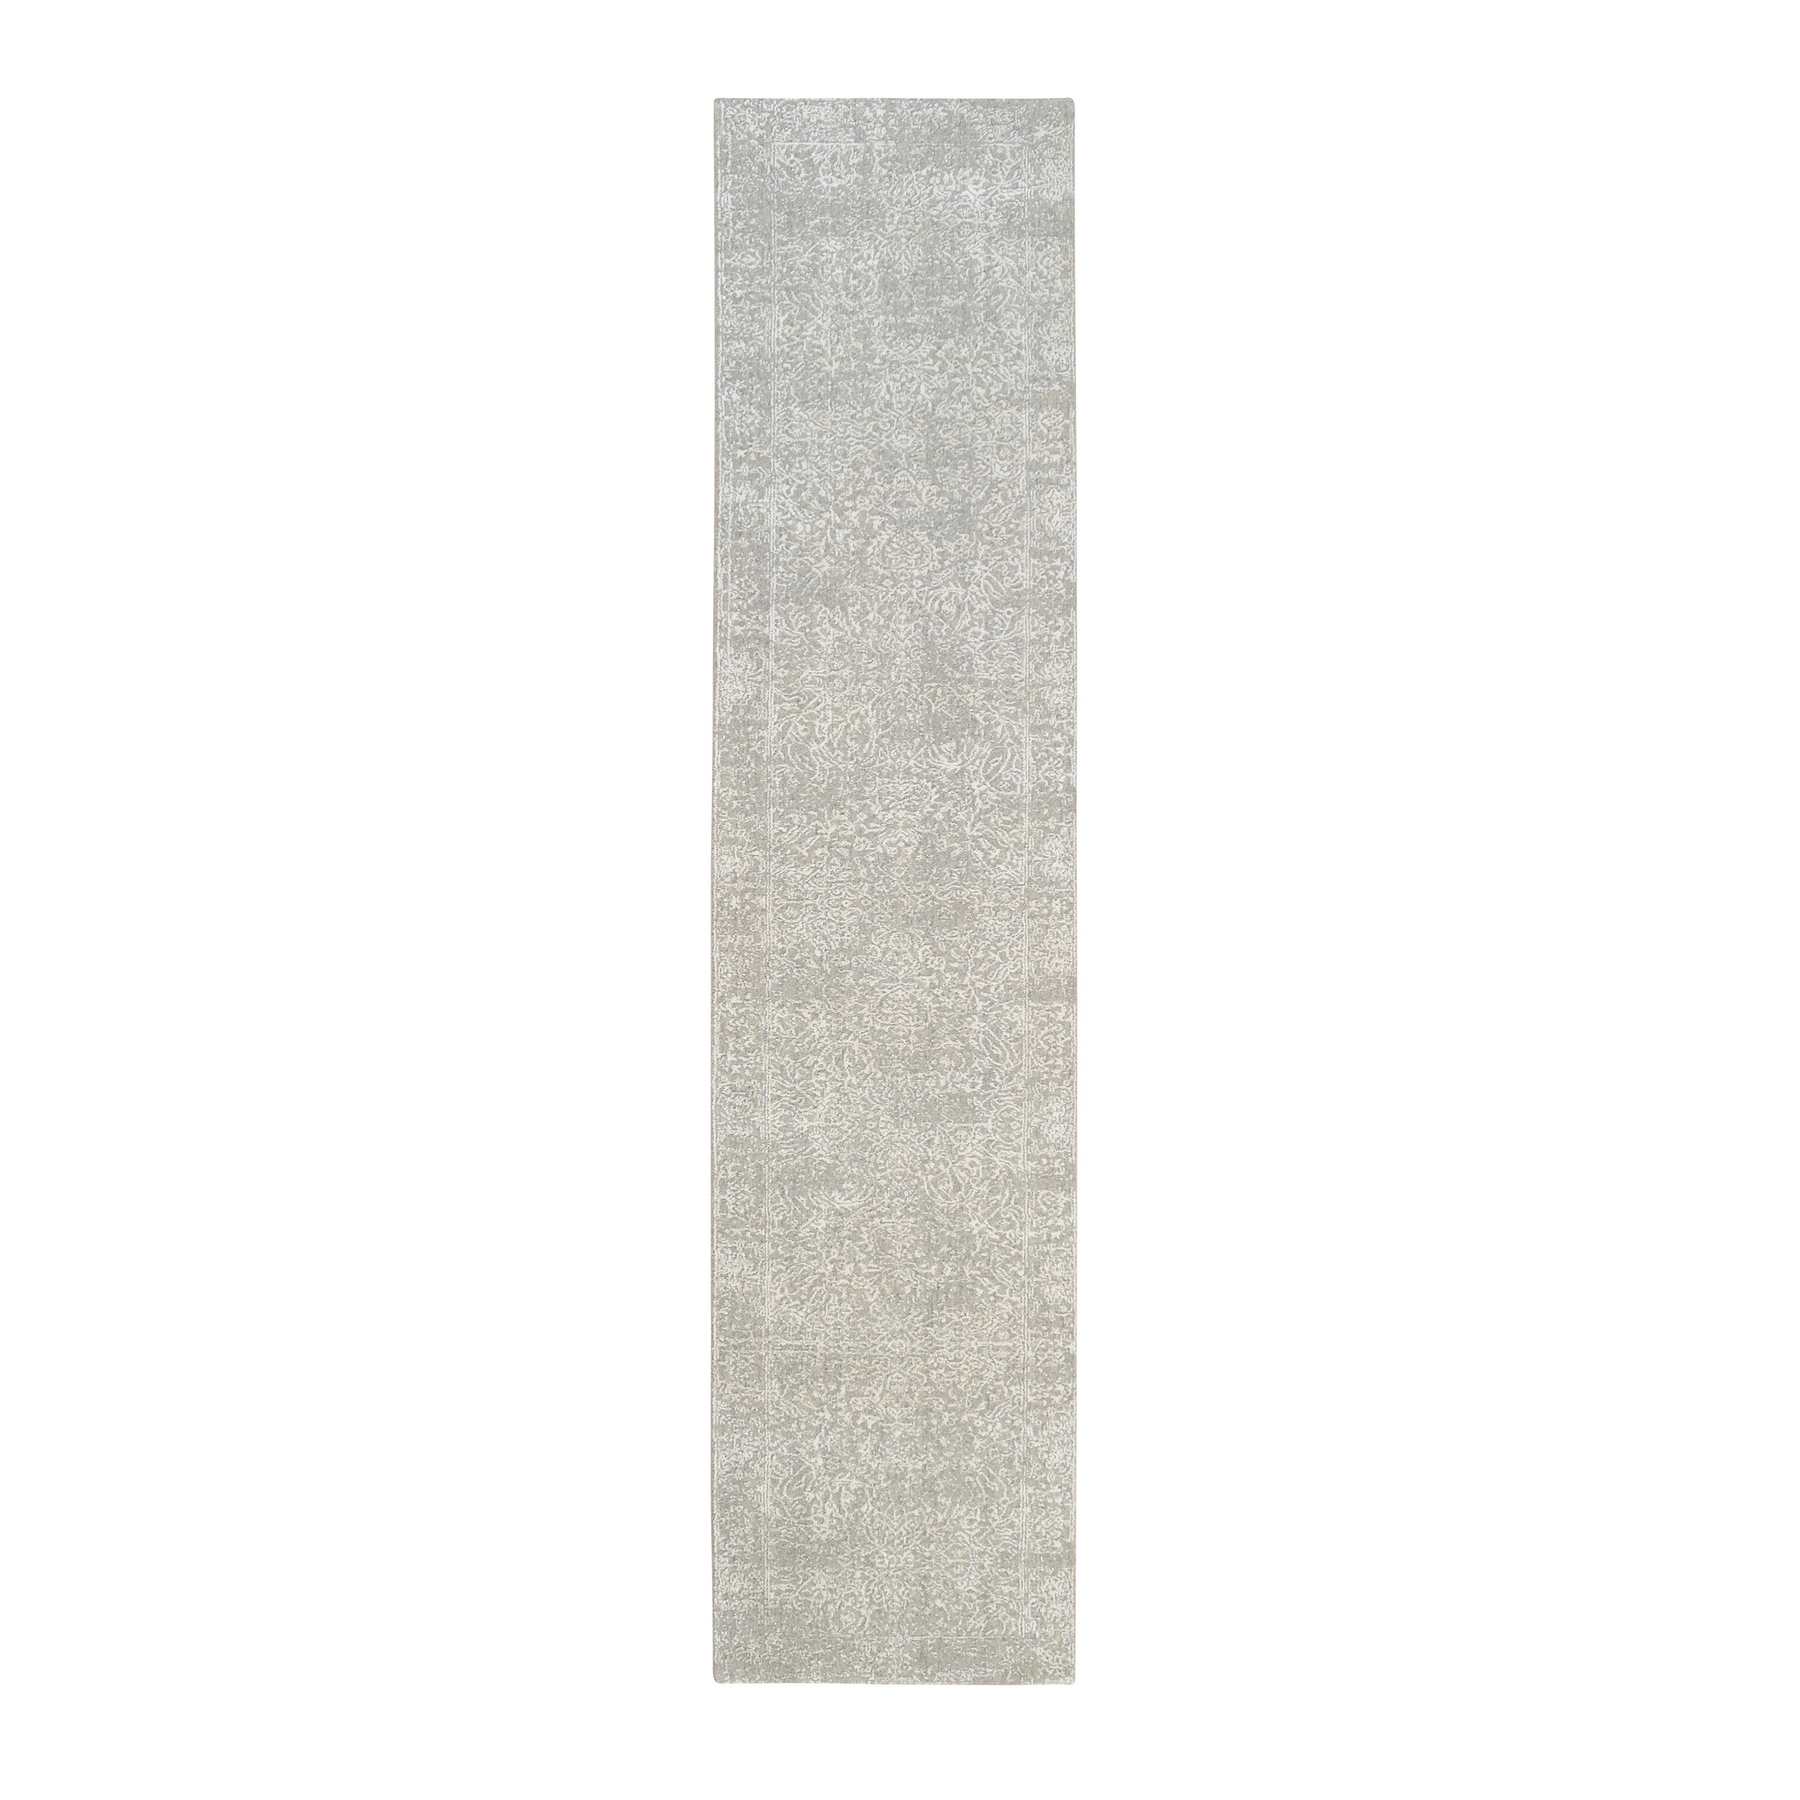 Mid Century Modern Collection Hand Loomed Beige Rug No: 1126600